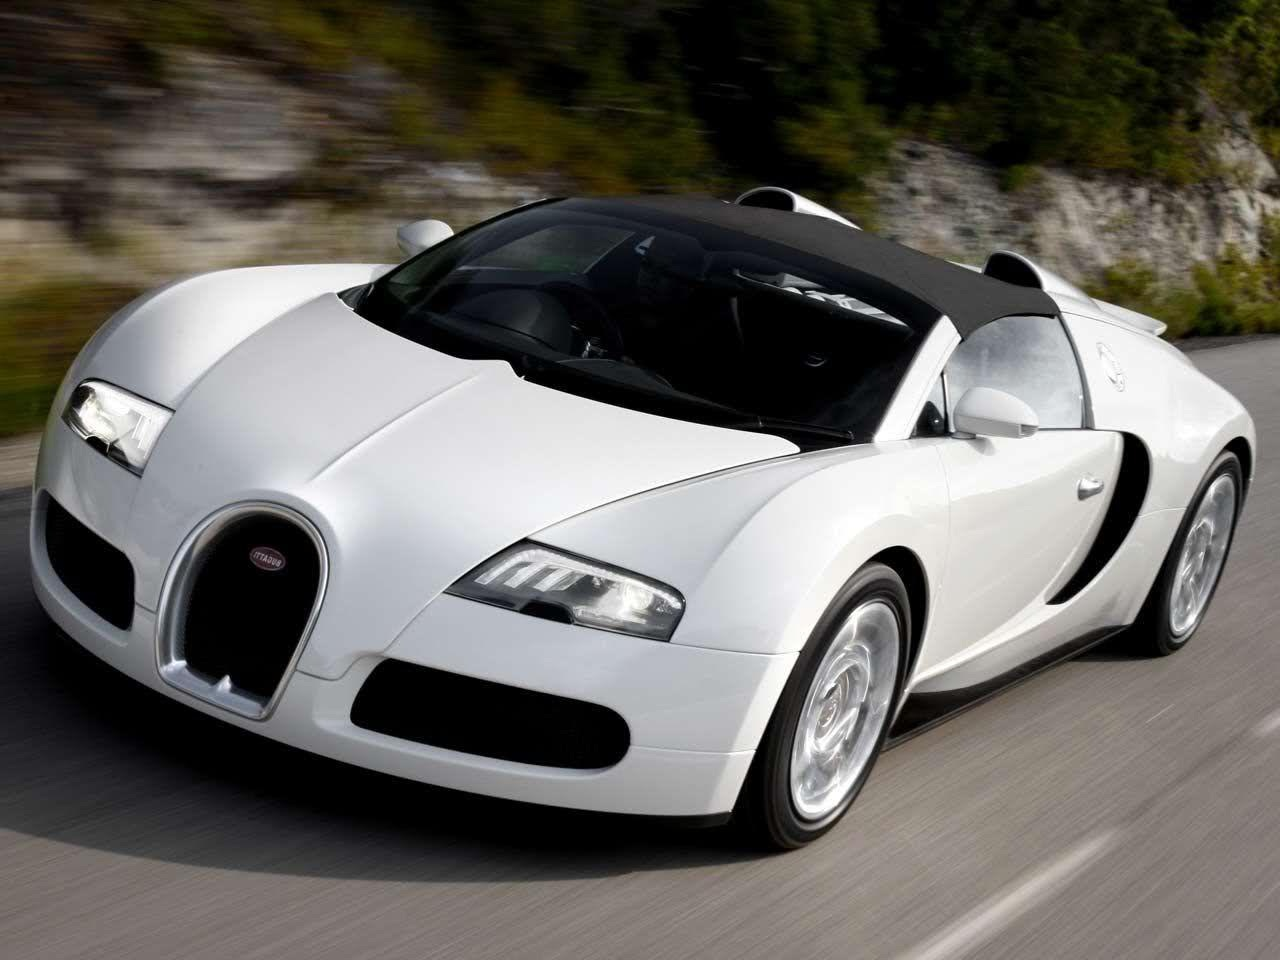 2018 bugatti veyron super sport. Unique Super Bugatti Price 2014 25 Car Desktop Background  Background Bugatti Veyron And 2018 Super Sport